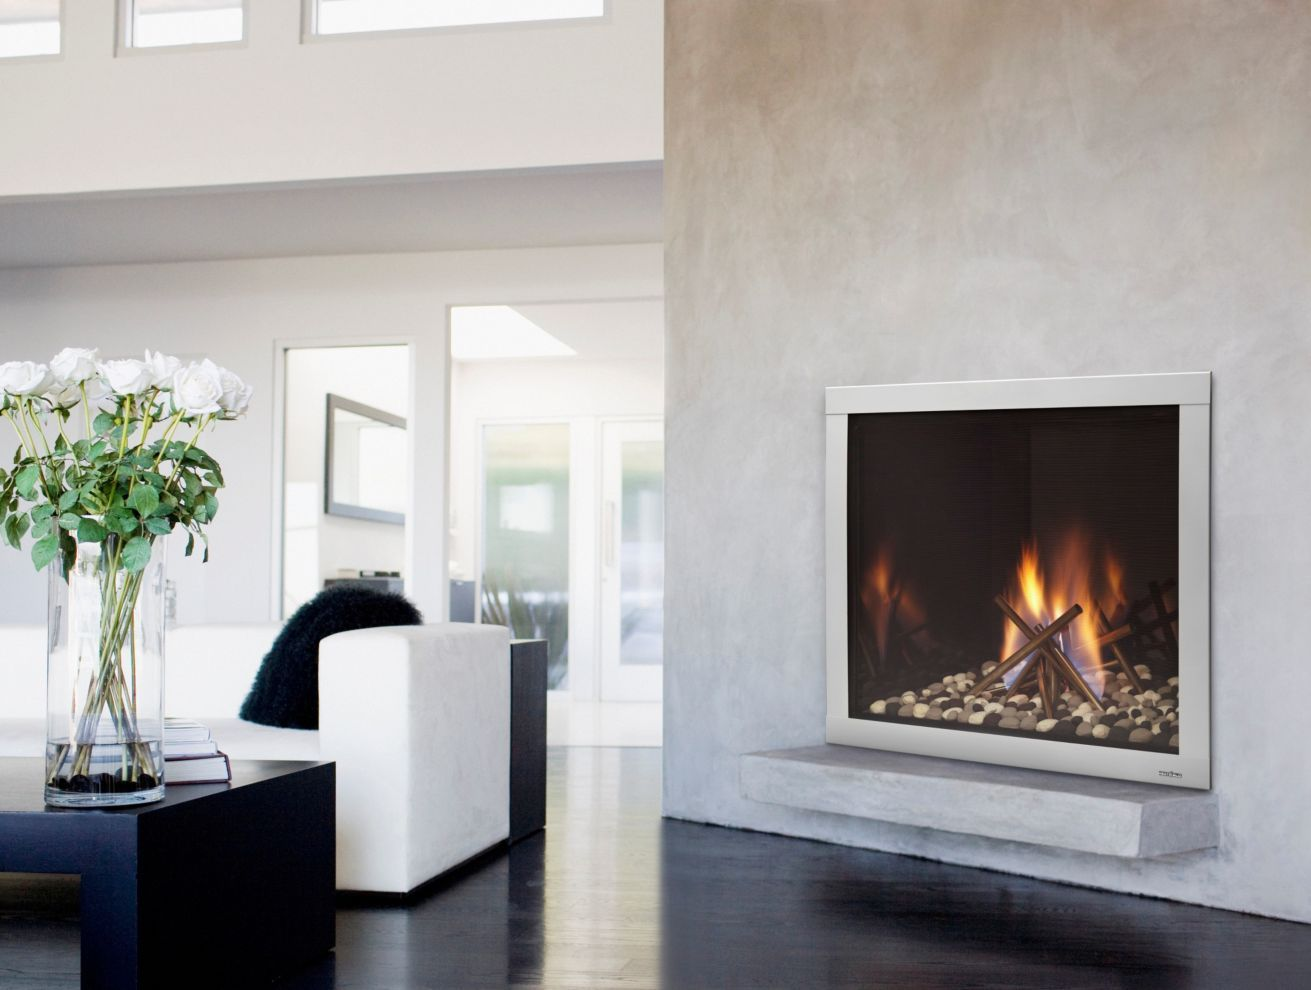 A Fireplace From California Mantel Fireplace Adds Interest To